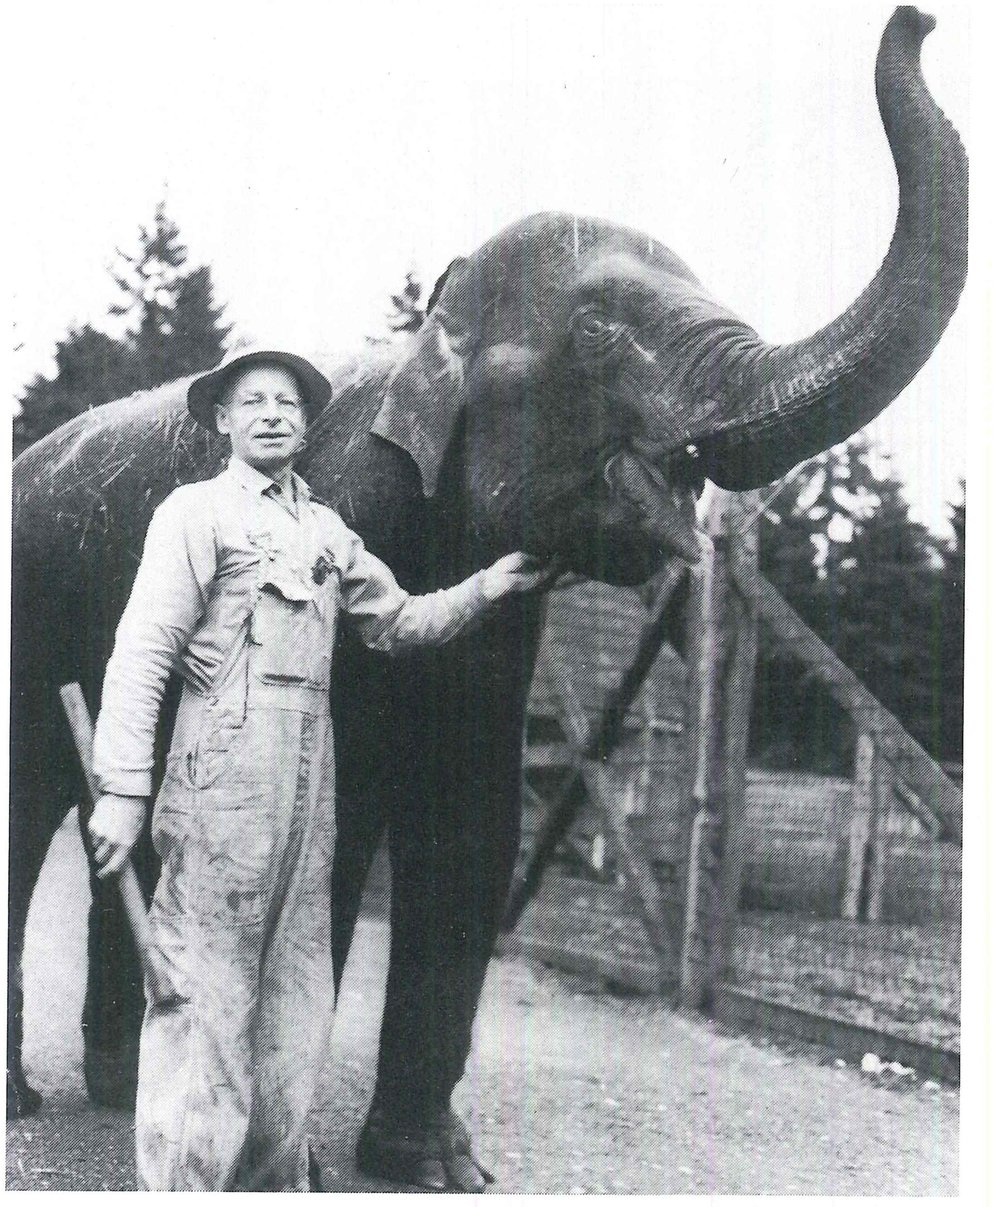 Rosie the elephant lived at the Forest Park zoo. // Unknown